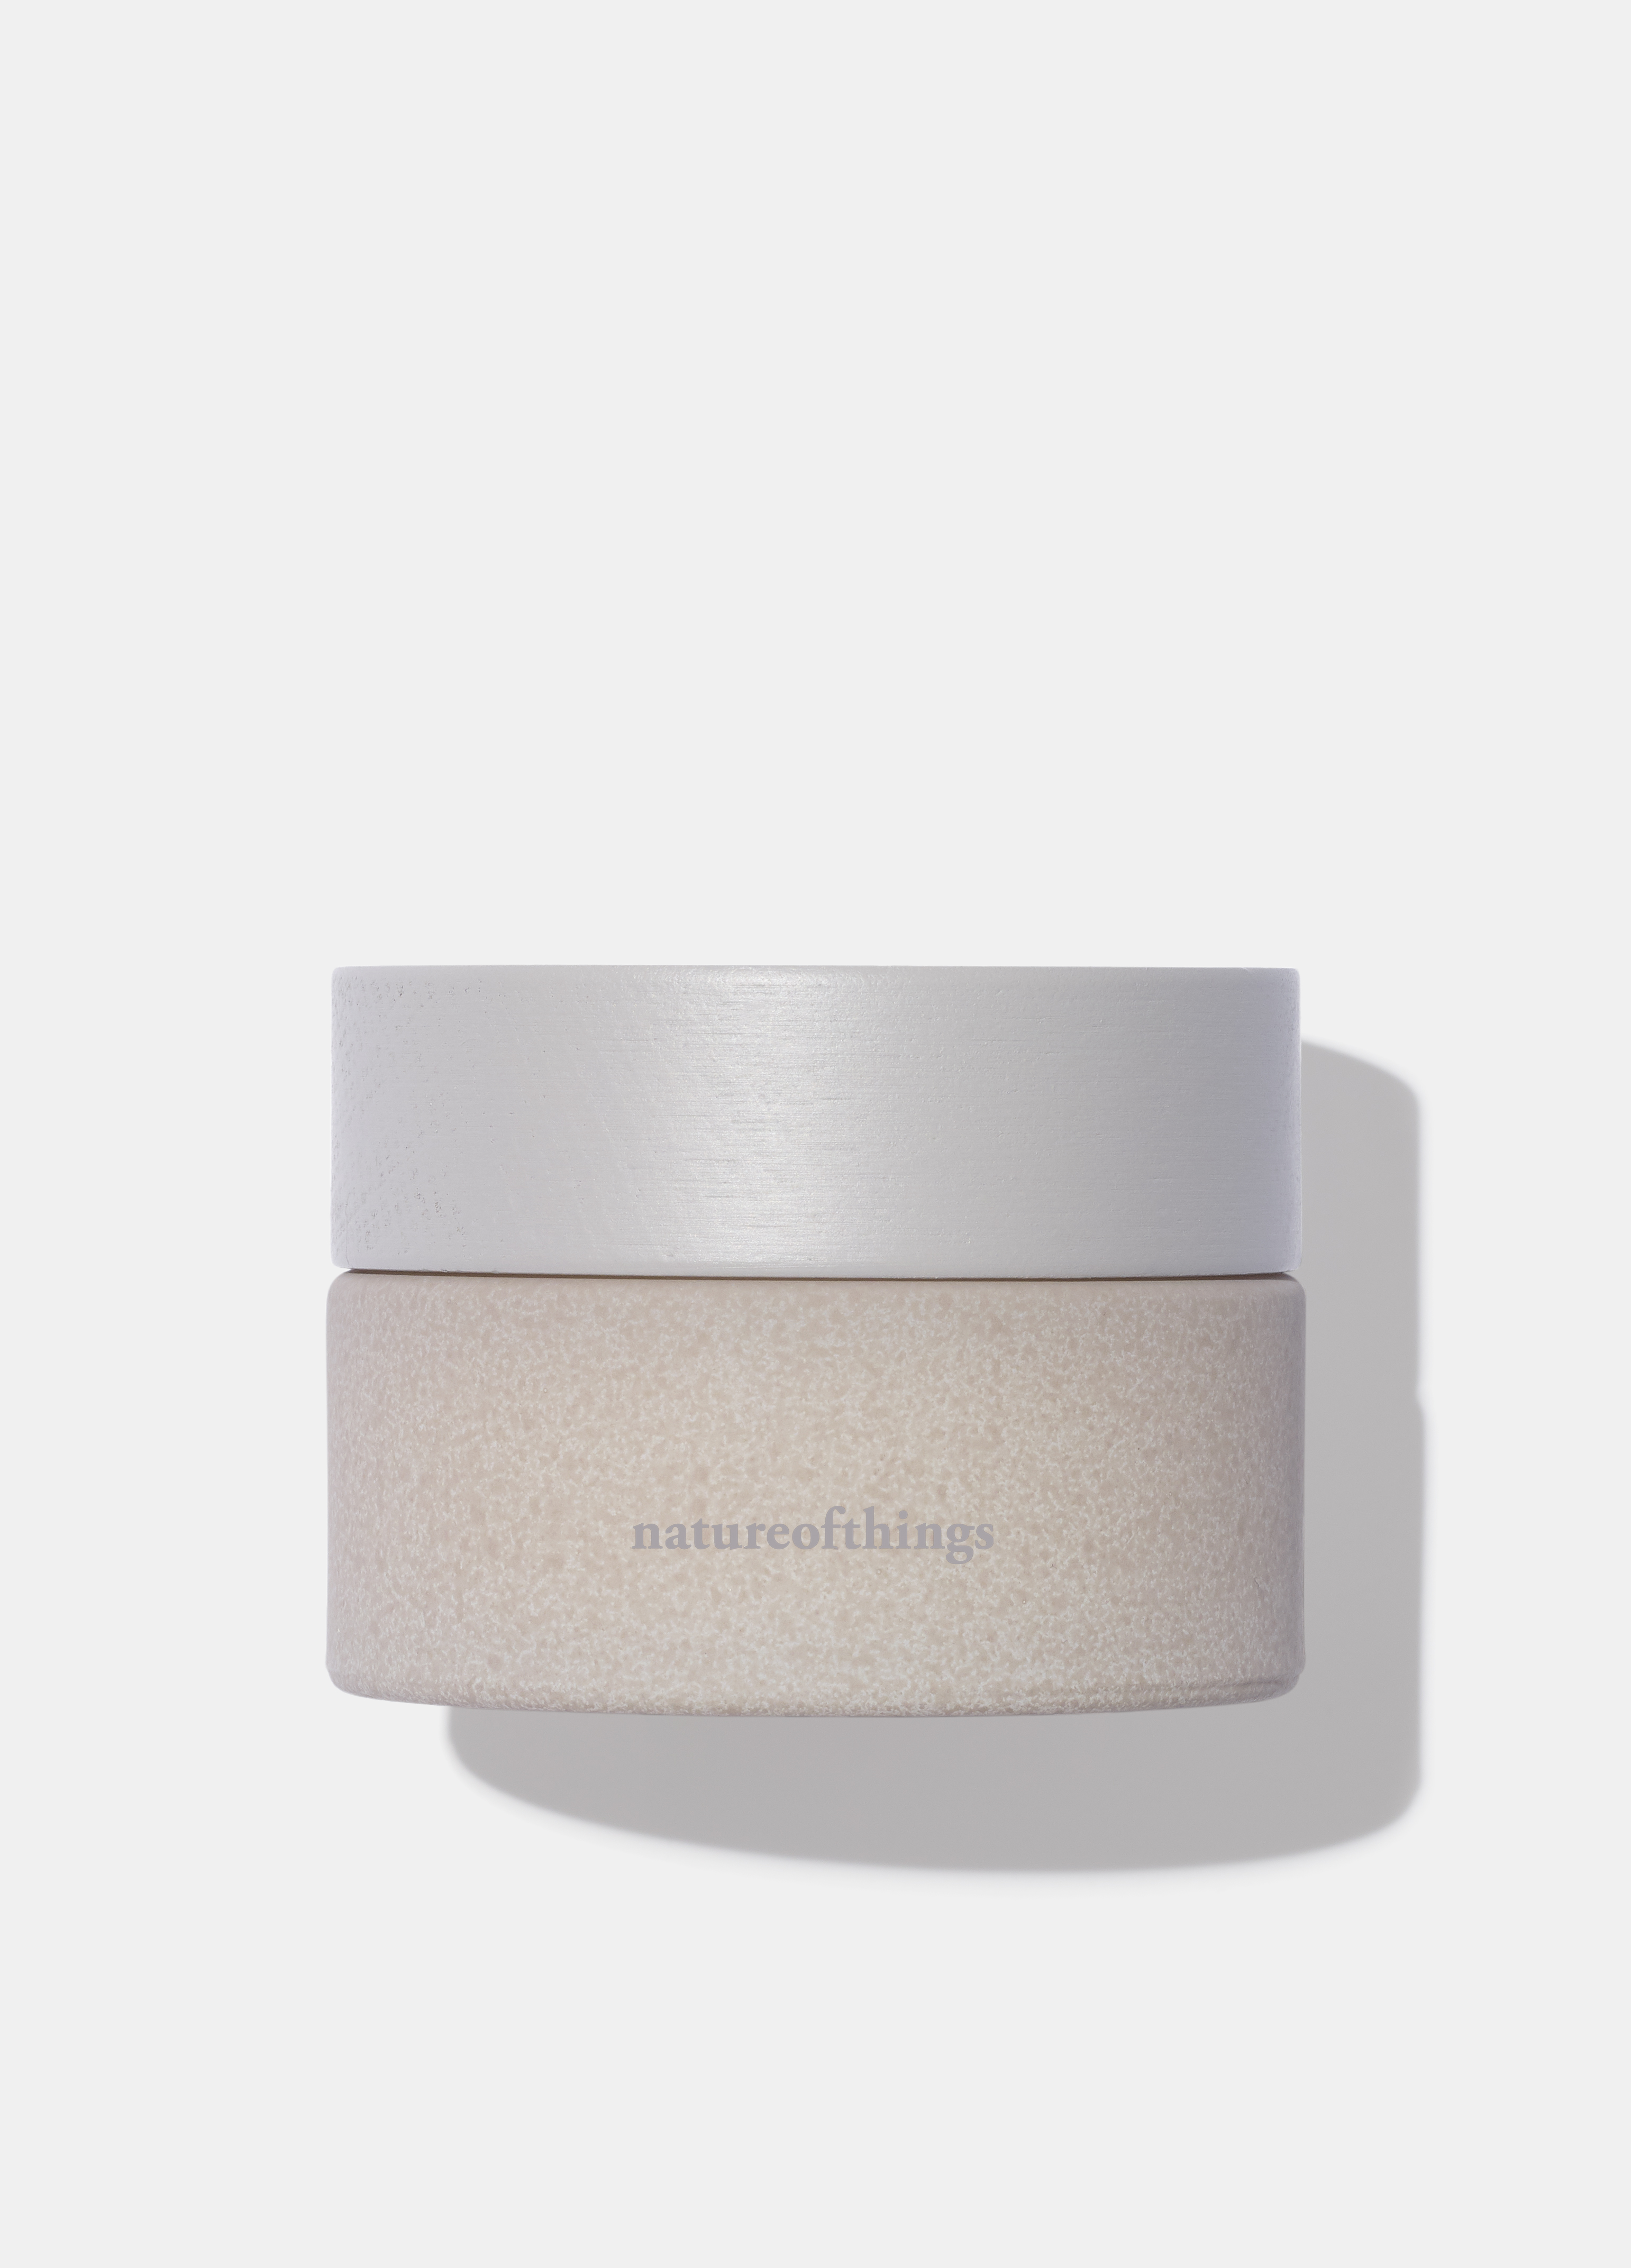 NatureOfThings / Superlative Body Balm